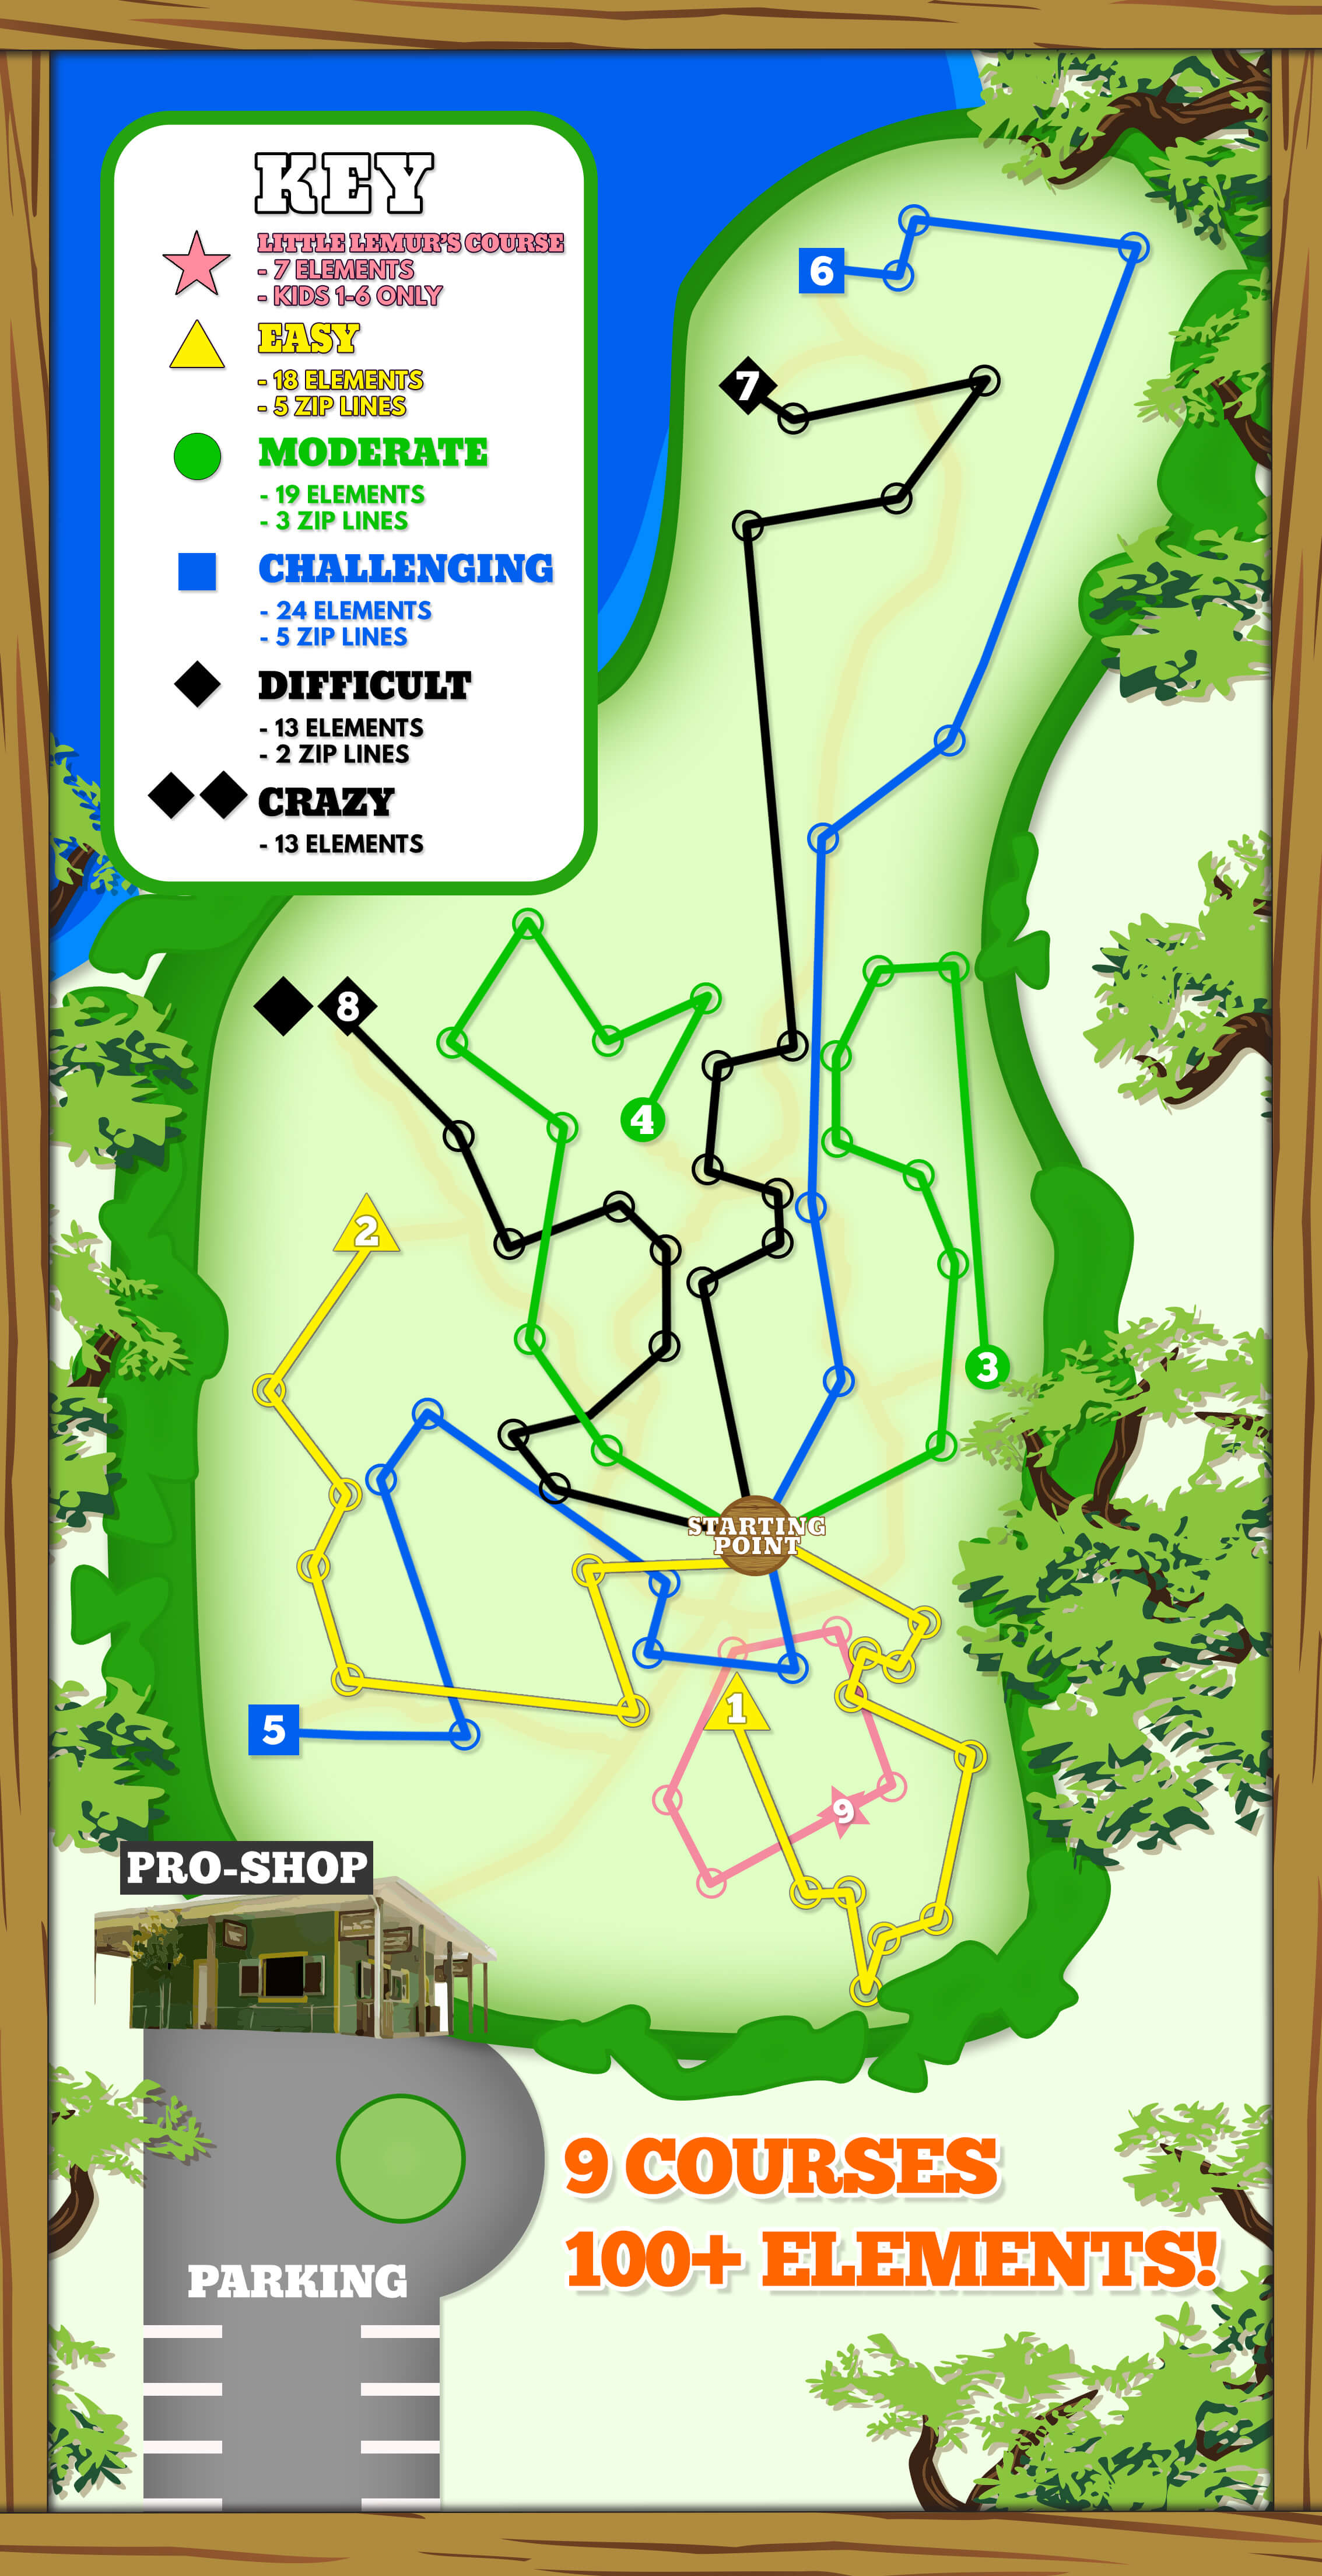 Treehoppers Aerial Adventure Park - Hours & Pricing